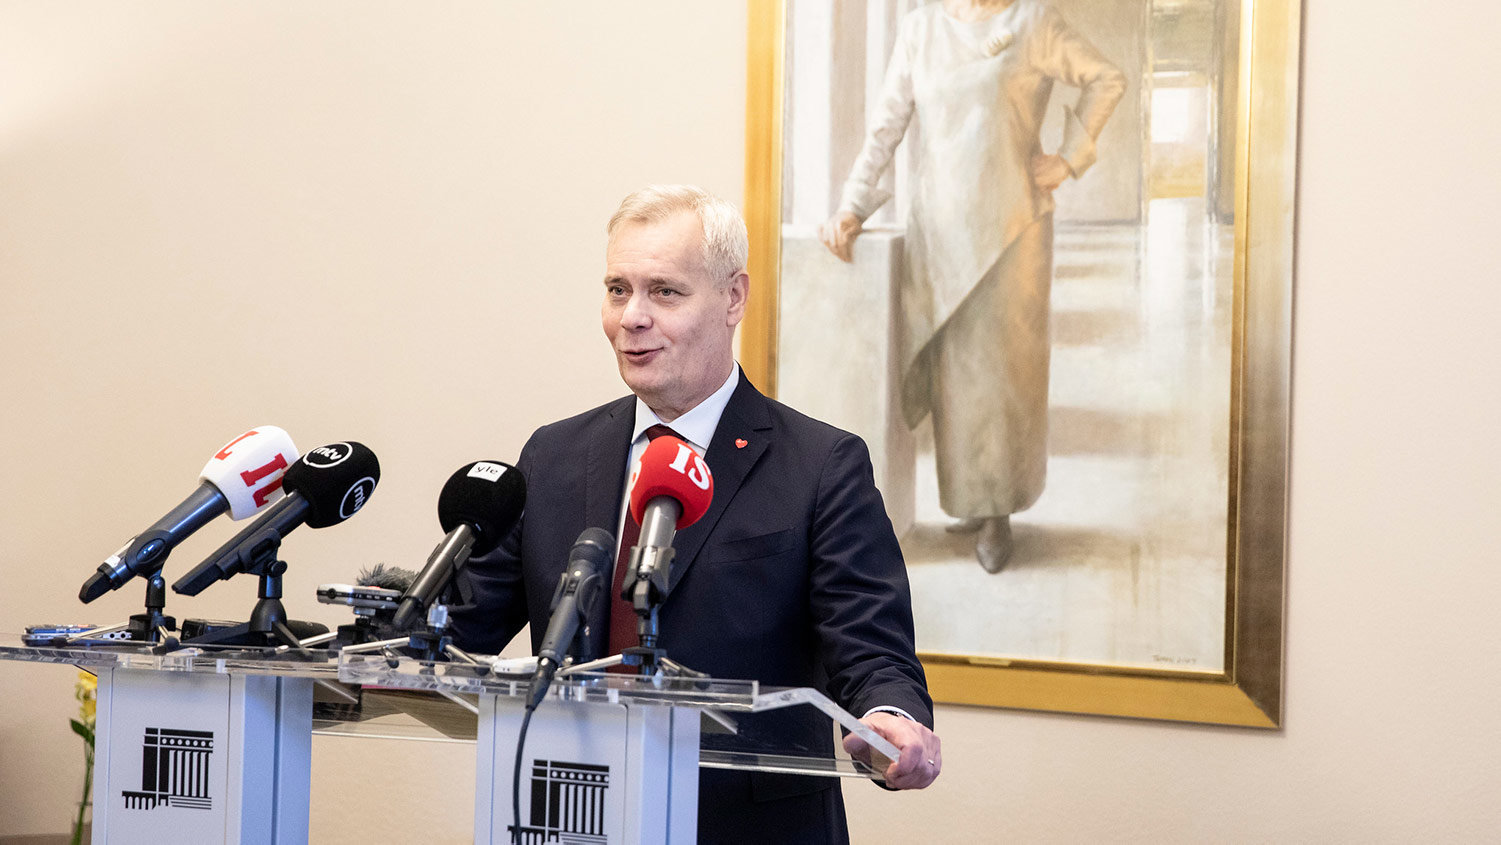 The leader of the Social Democratic Party (SDP), Antti Rinne. Photo: Hanne Salonen/Eduskunta.